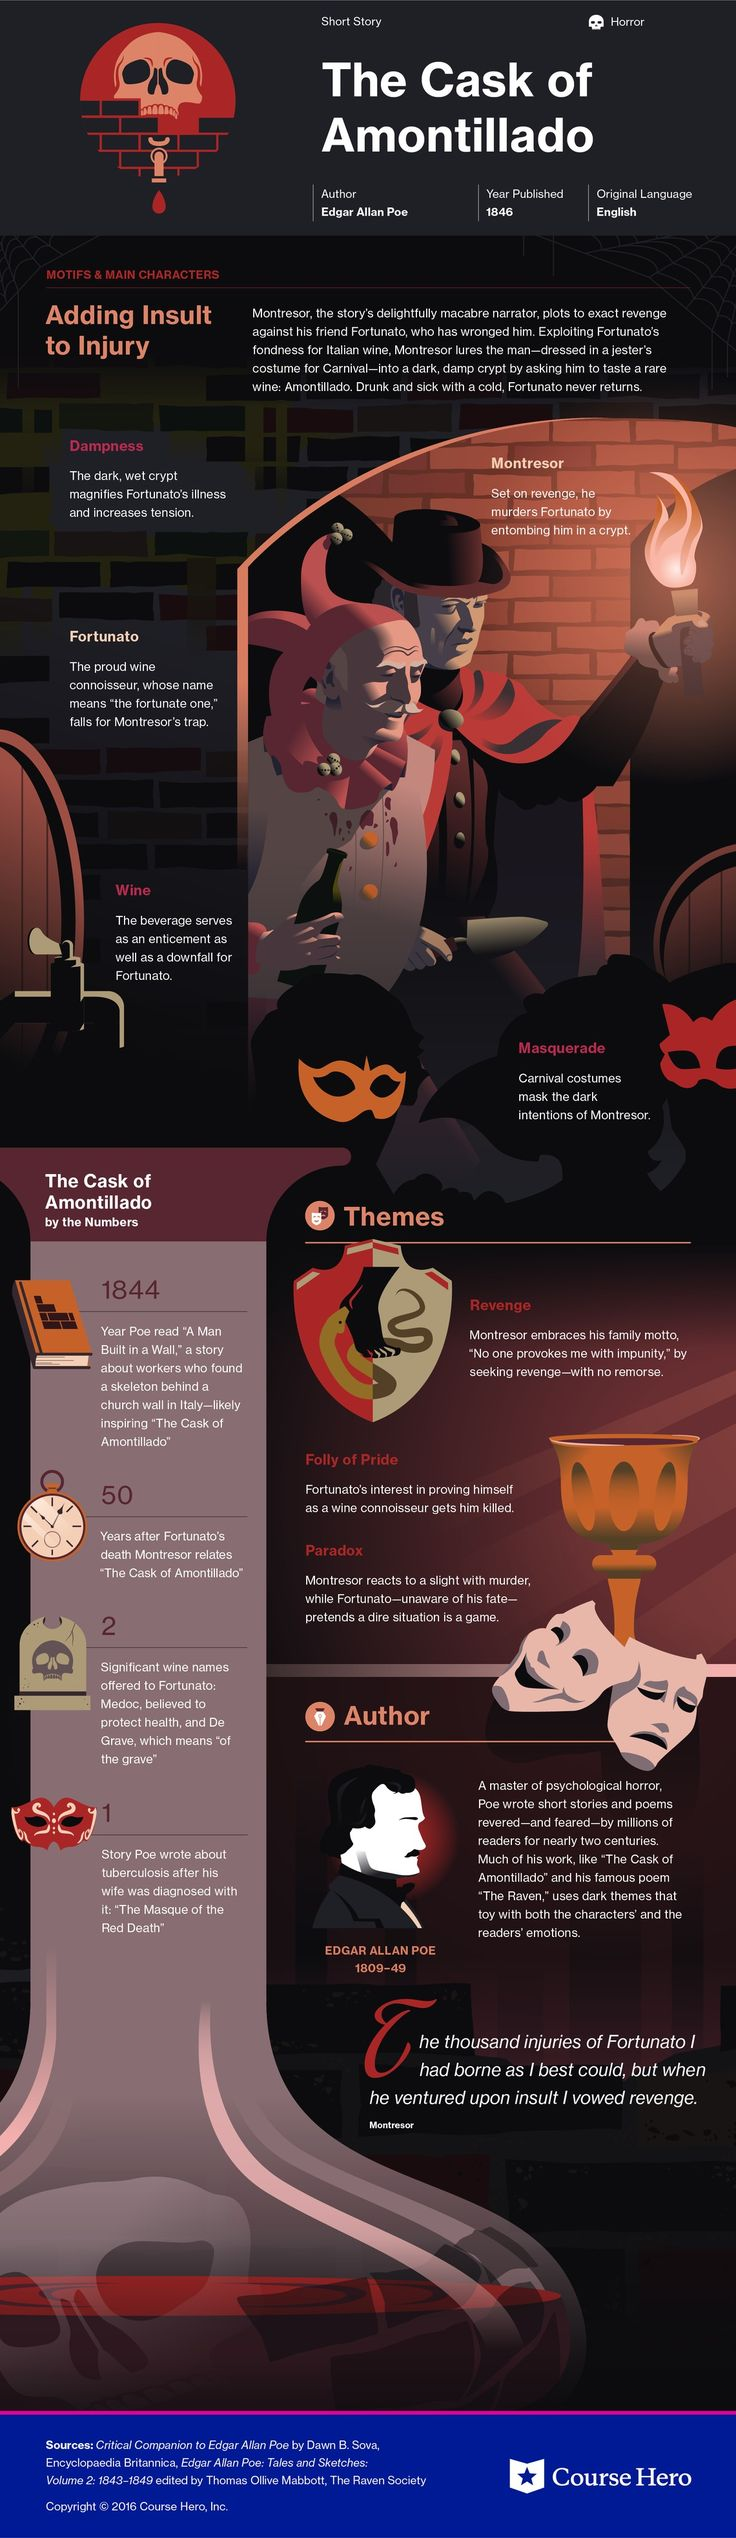 The Cask of Amontillado infographic